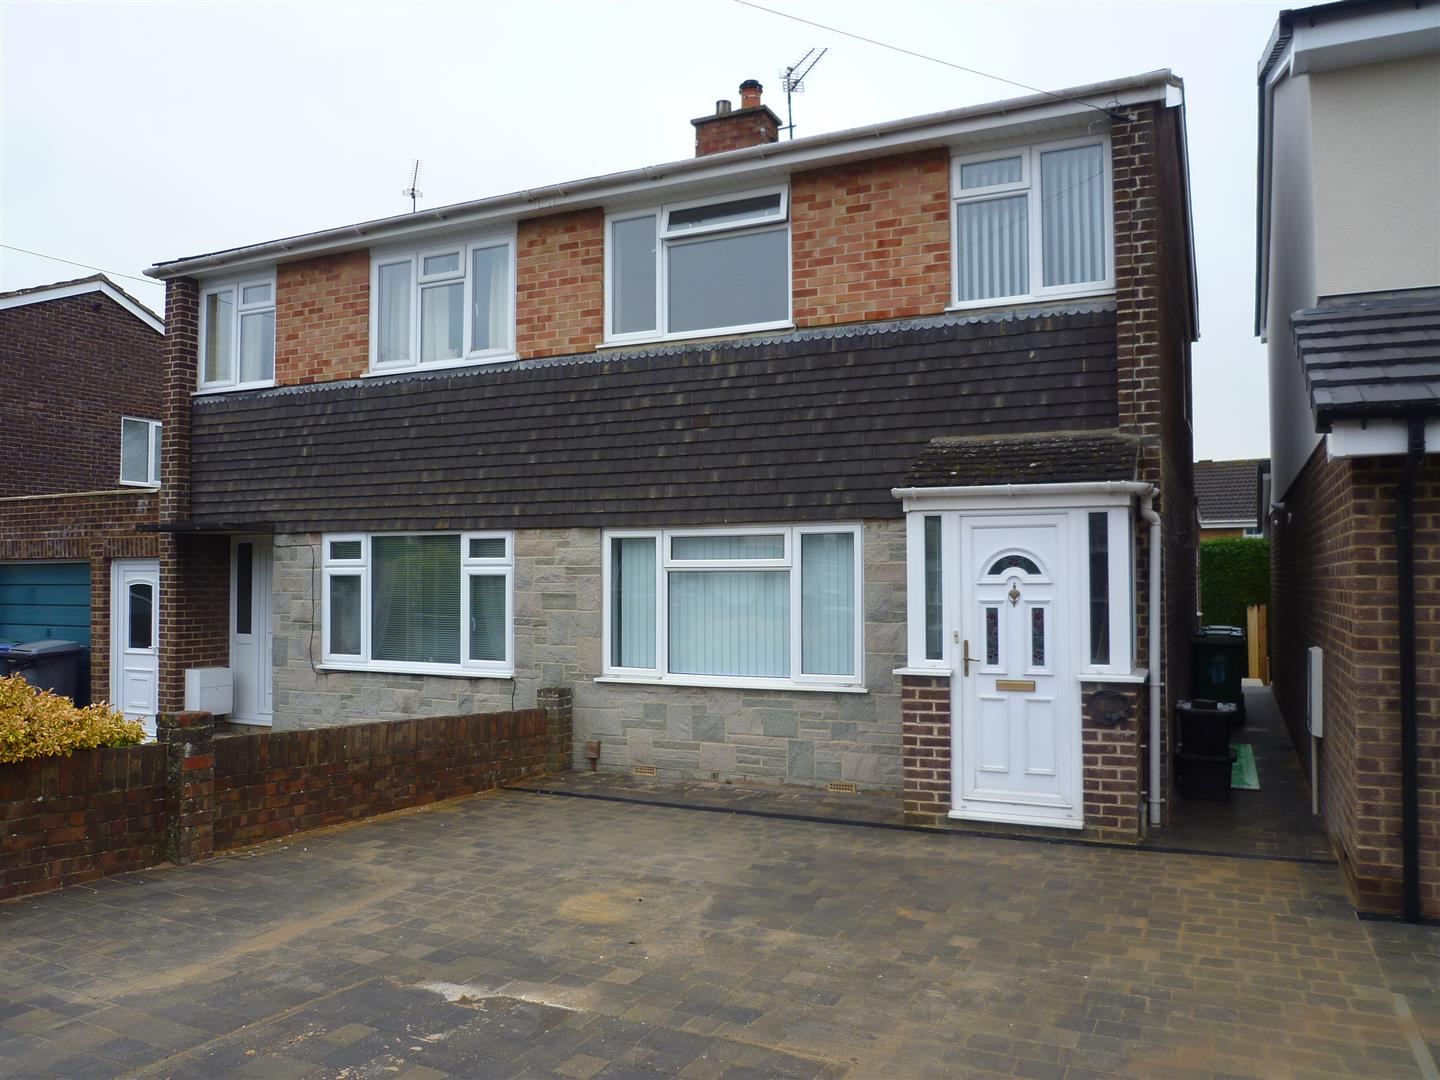 3 Bedrooms Semi Detached House for sale in Southview Road, Trowbridge